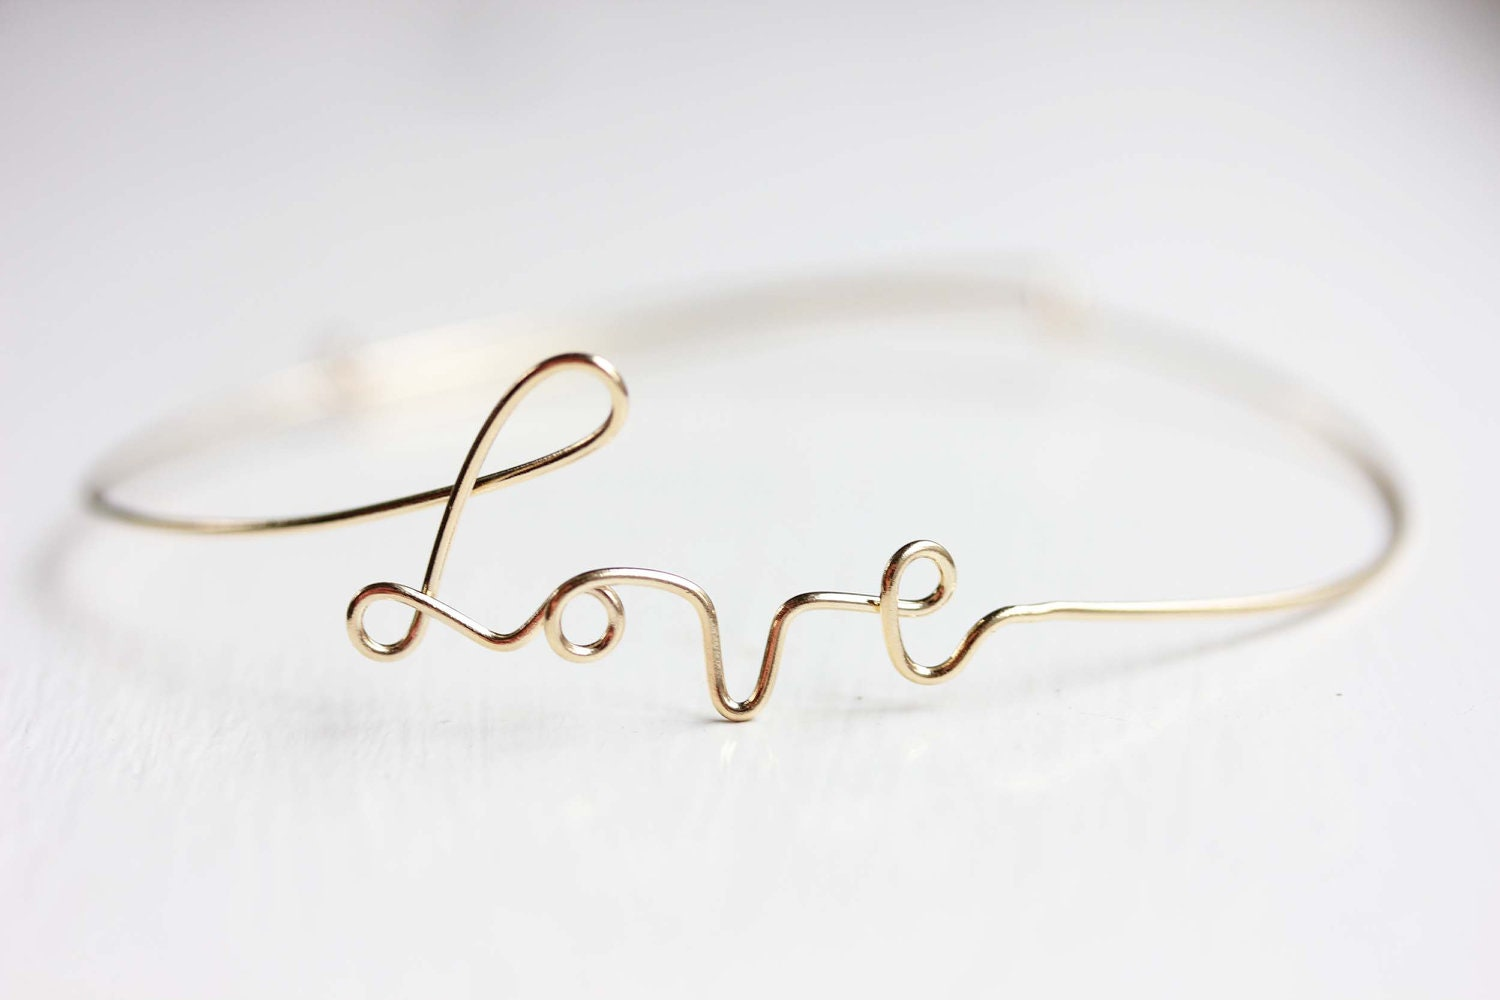 present plated ladies love silver girl gold knot bracelet jewelry bangles simple product rose bamboo cuff fashion birthday beautiful